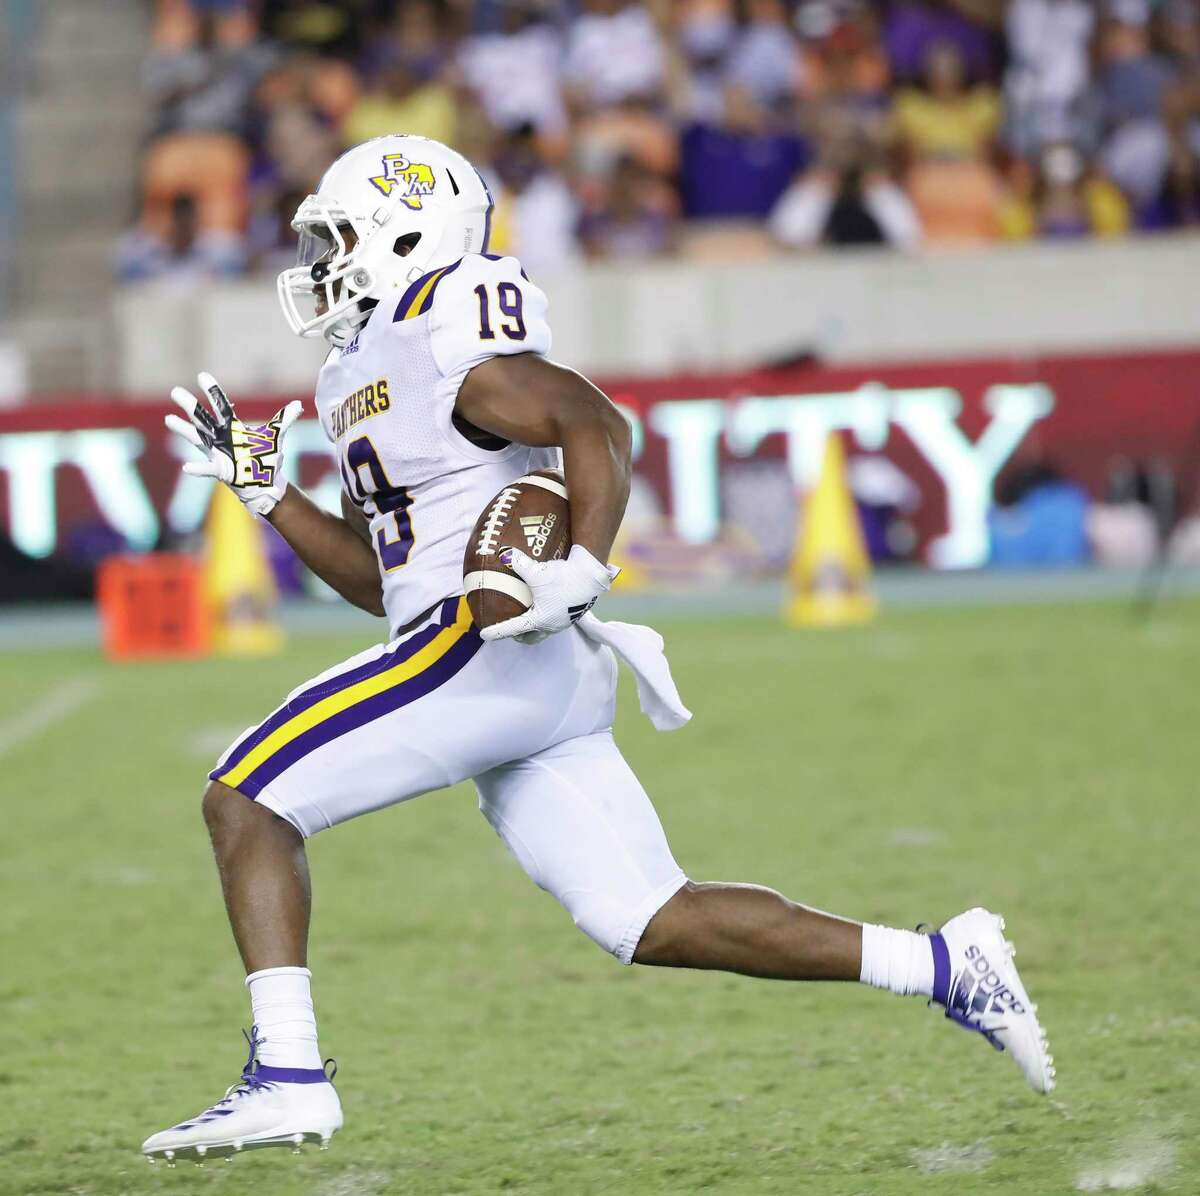 Prairie View A&M Panthers wide receiver Tony Mullins (19) runs the ball into the end zone for a touchdown in the second half of a college football game at BBVA Stadium, 8/31/19, in Houston.